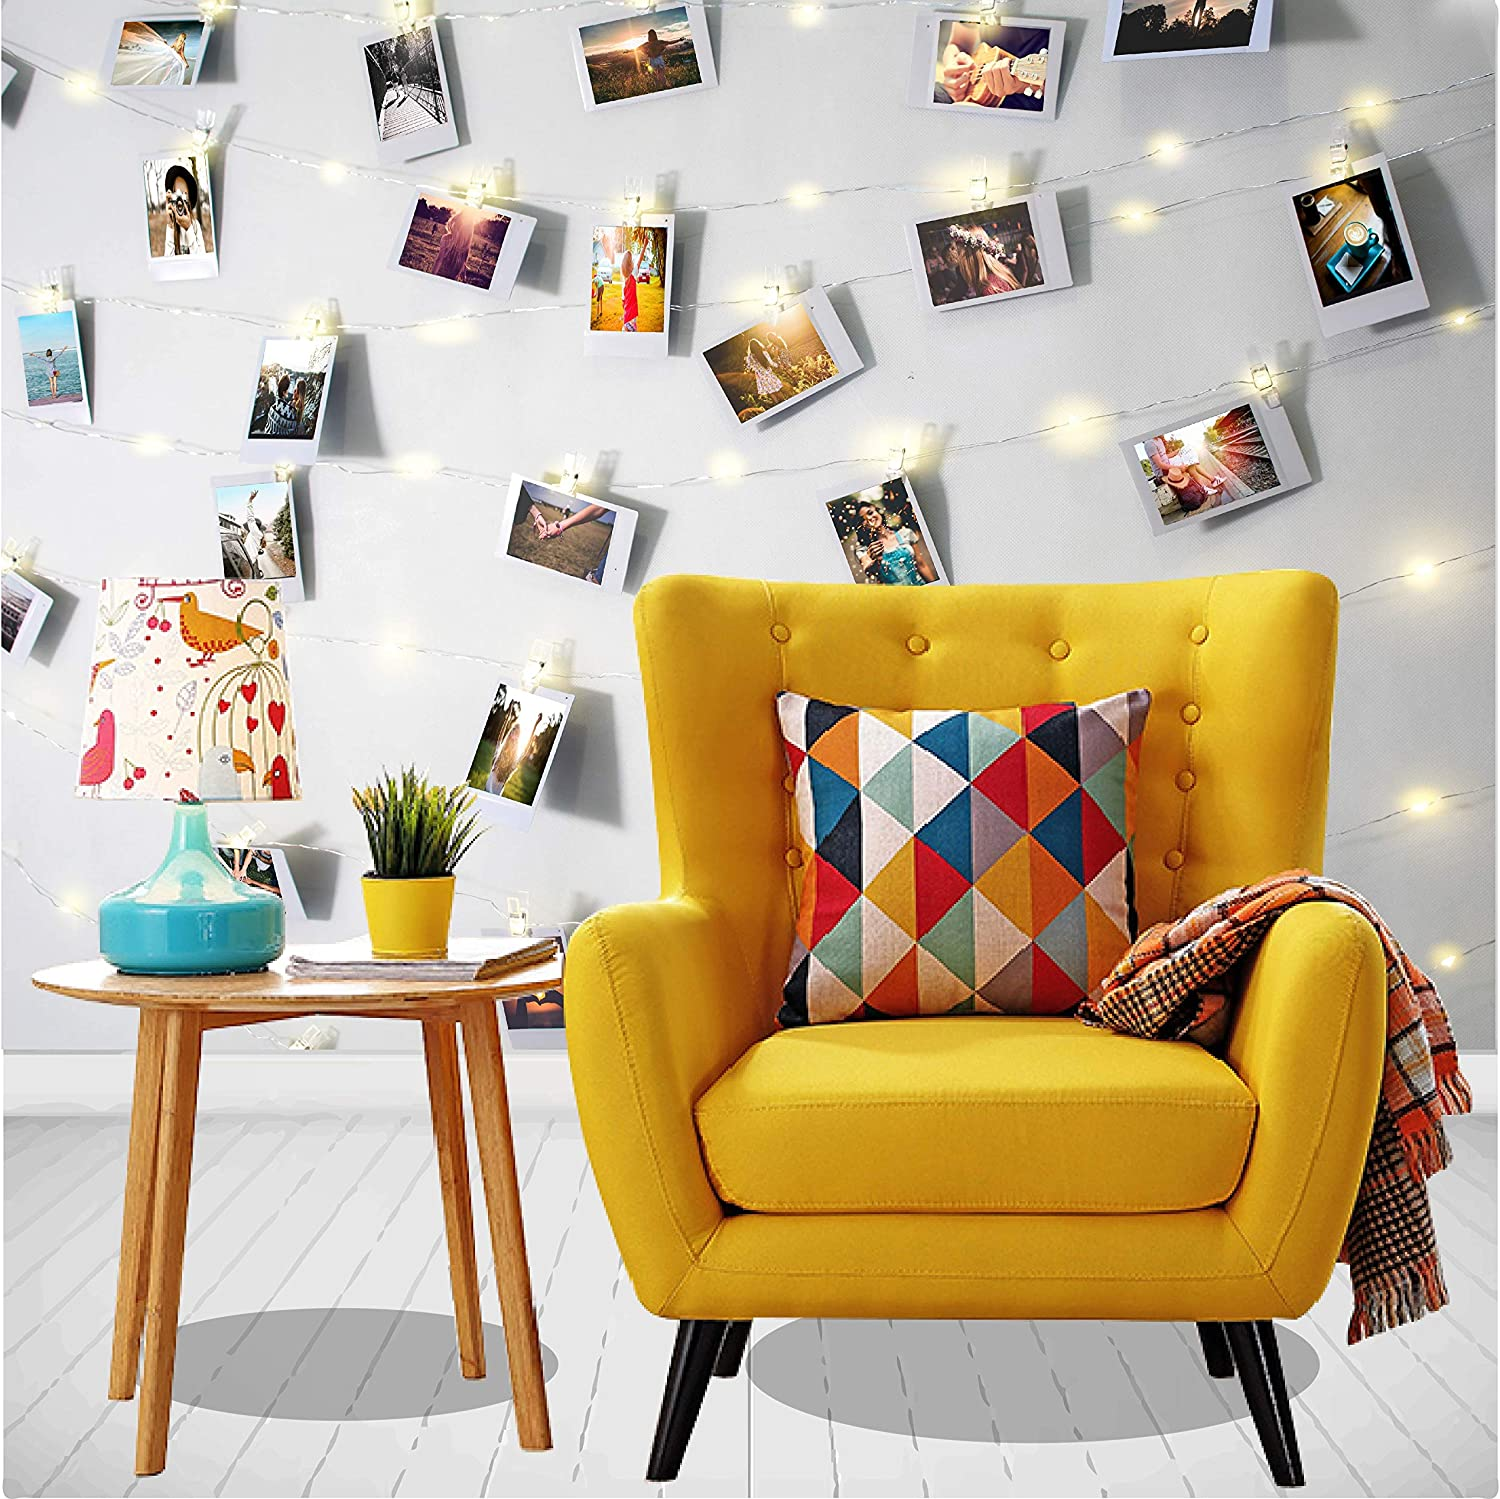 Photo Clip String Lights 17ft - 50 LED String Fairy Lights with 50 Clear Clothespin Clips for Picture Hanging, Dorm Room Decoration. Indoor Warm Fairy Lights with Clips, Battery Operated.